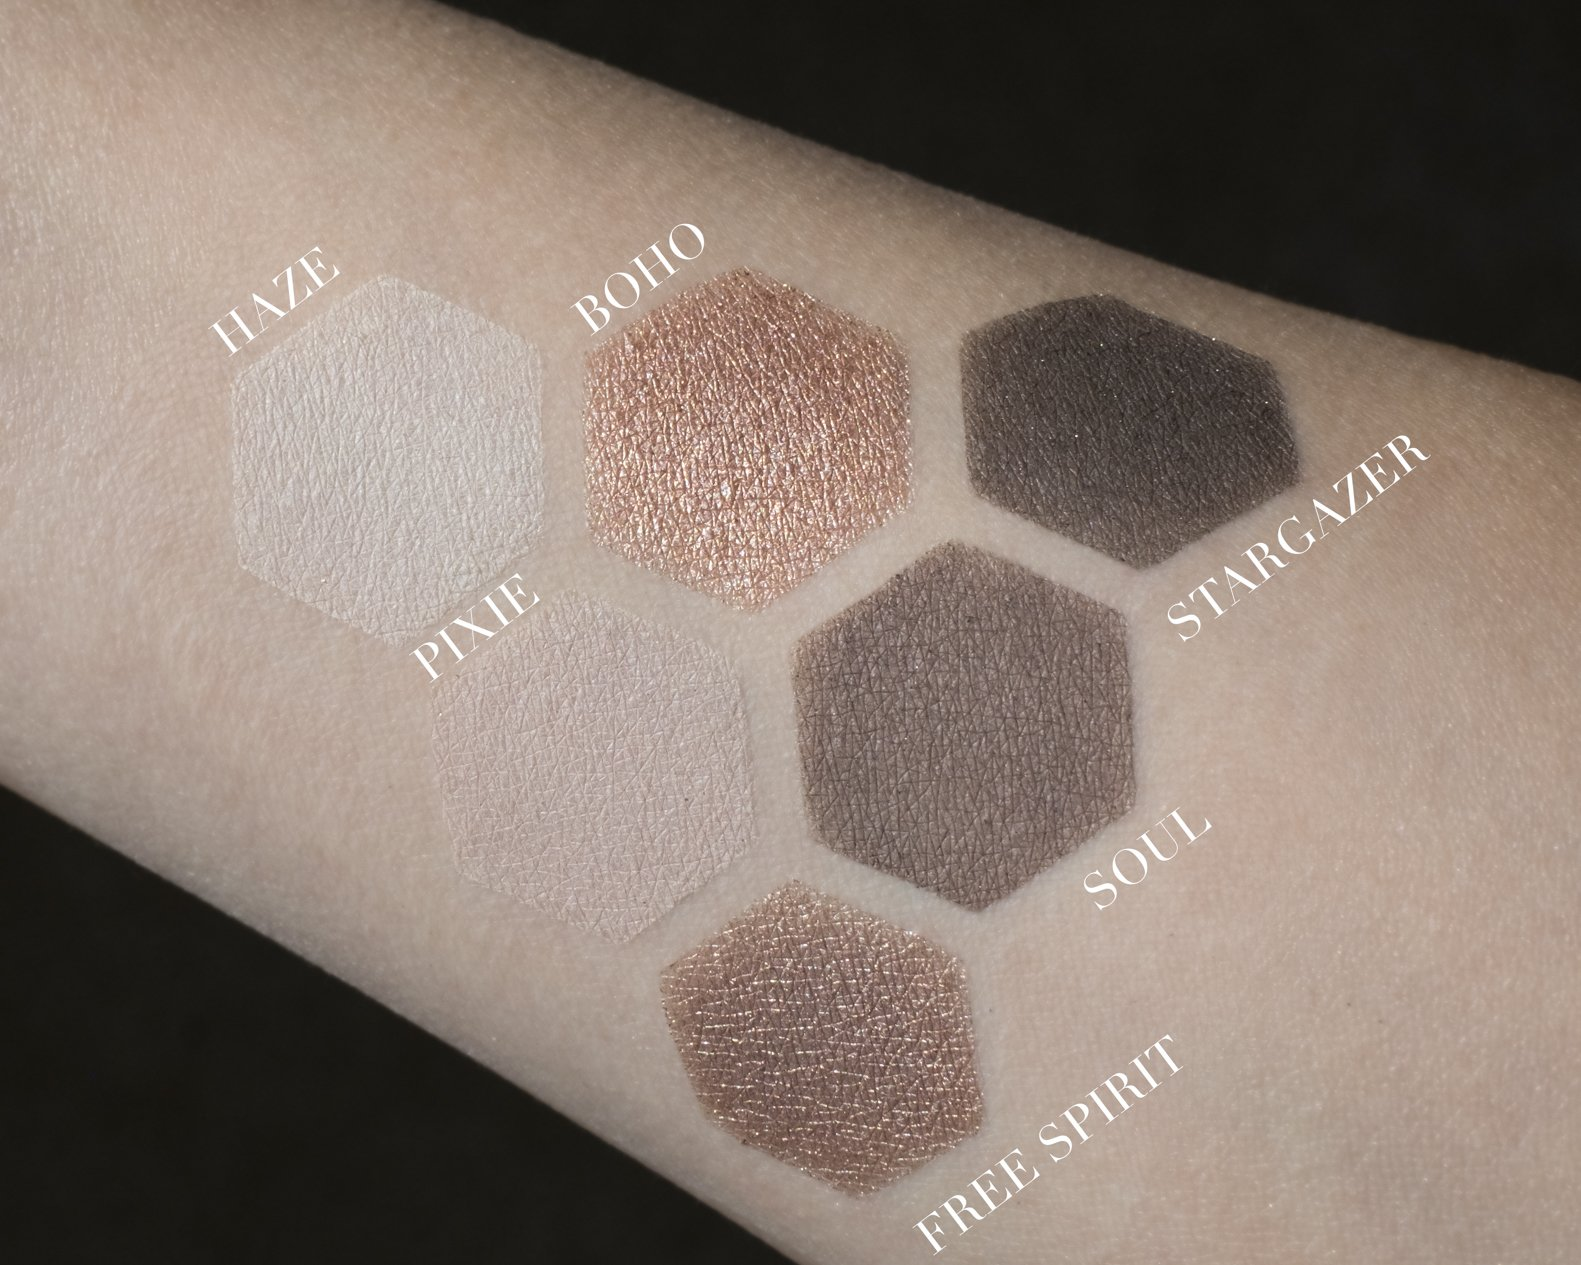 sunkissedblush-bareminerals-gennude-rose-swatches (11 of 17)